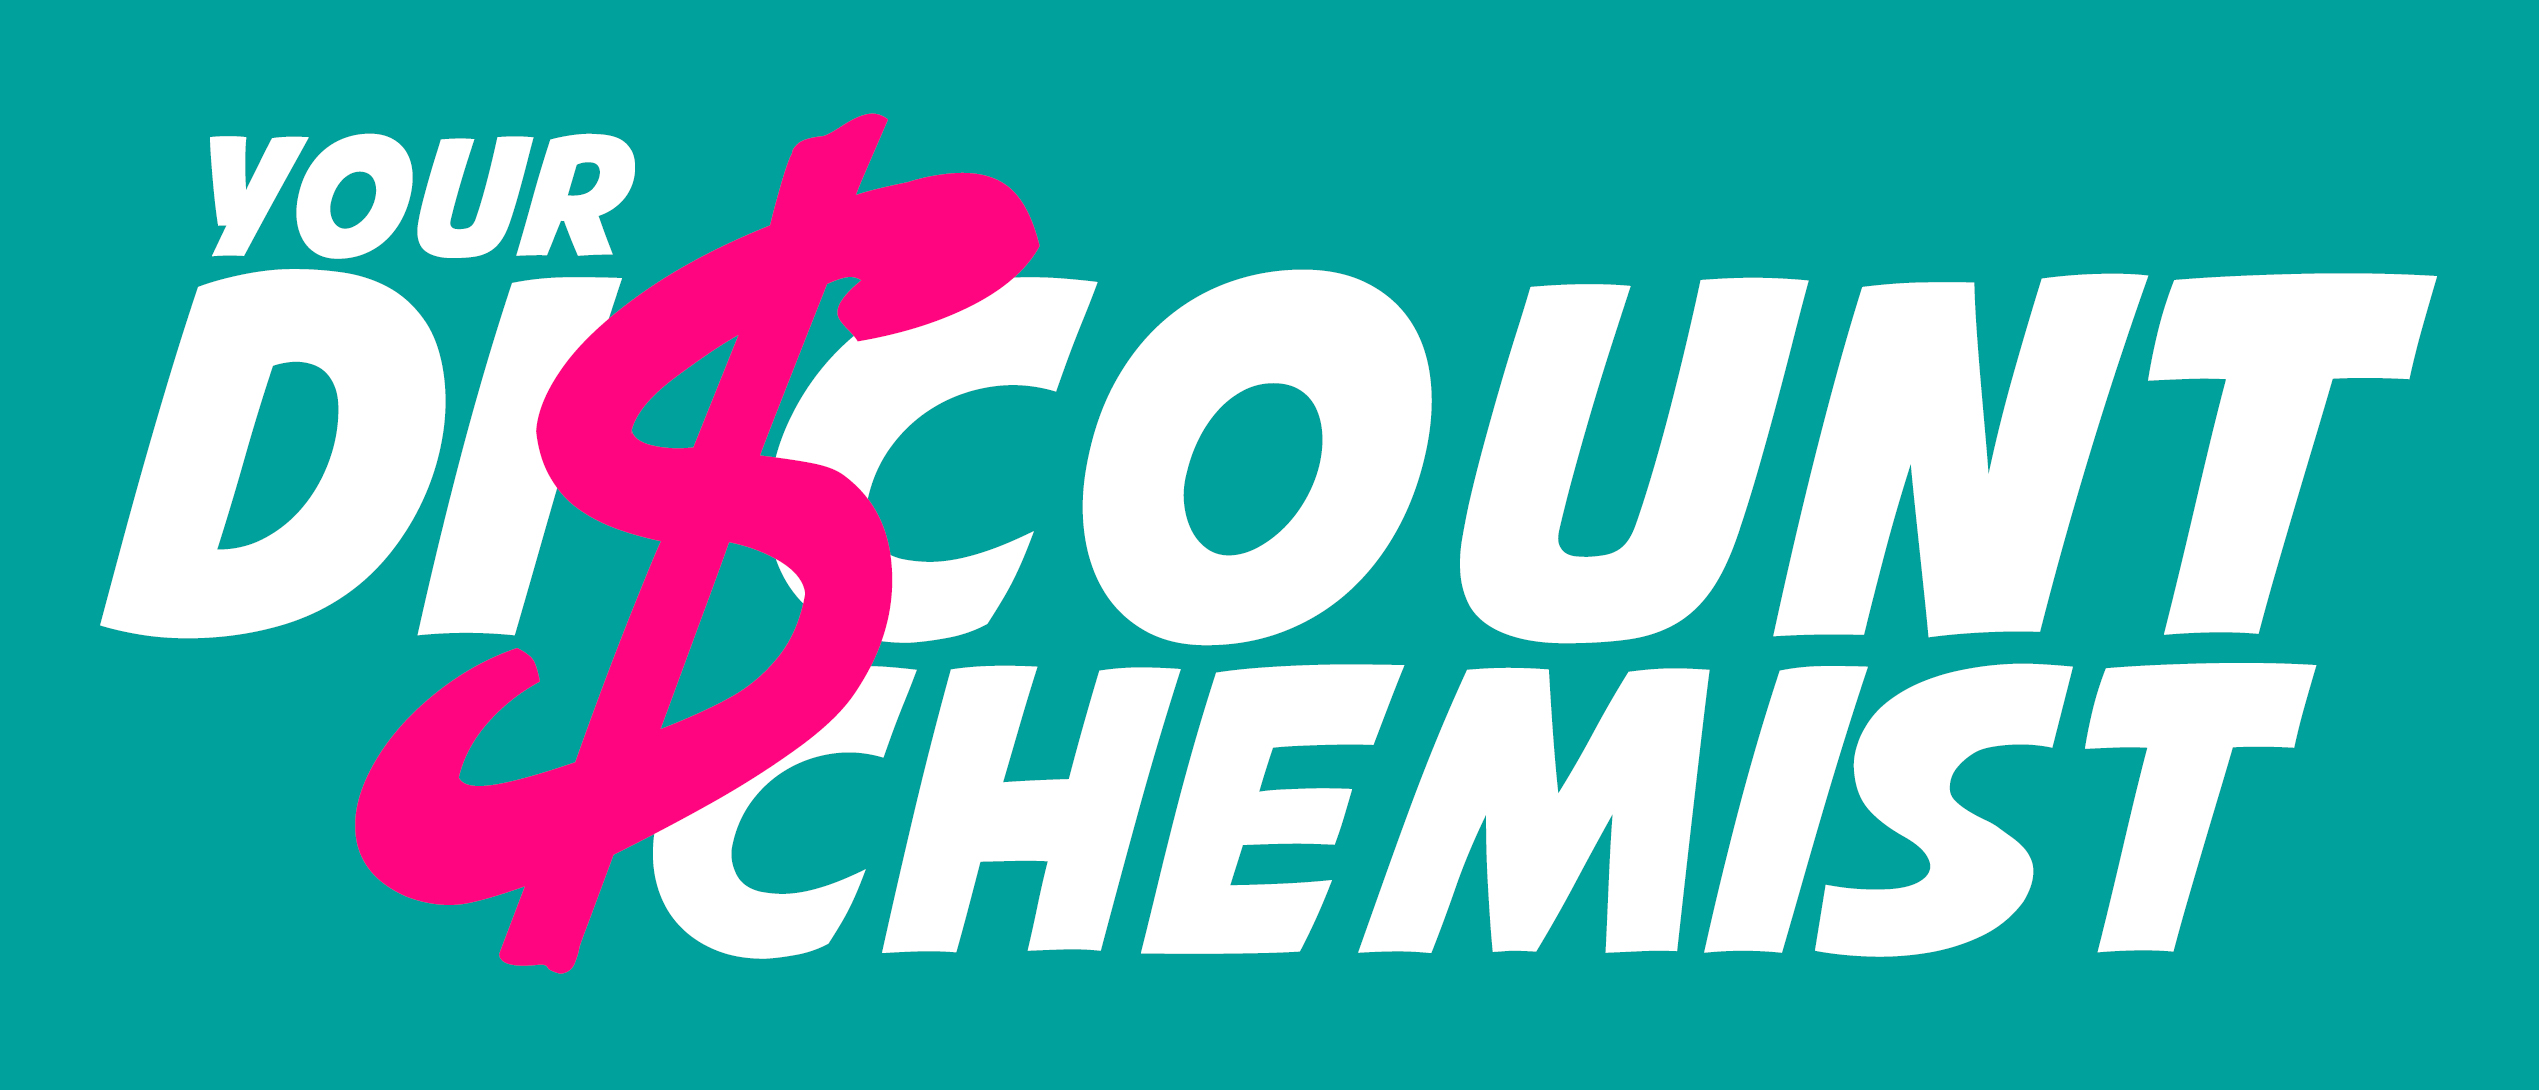 You Discount Chemist